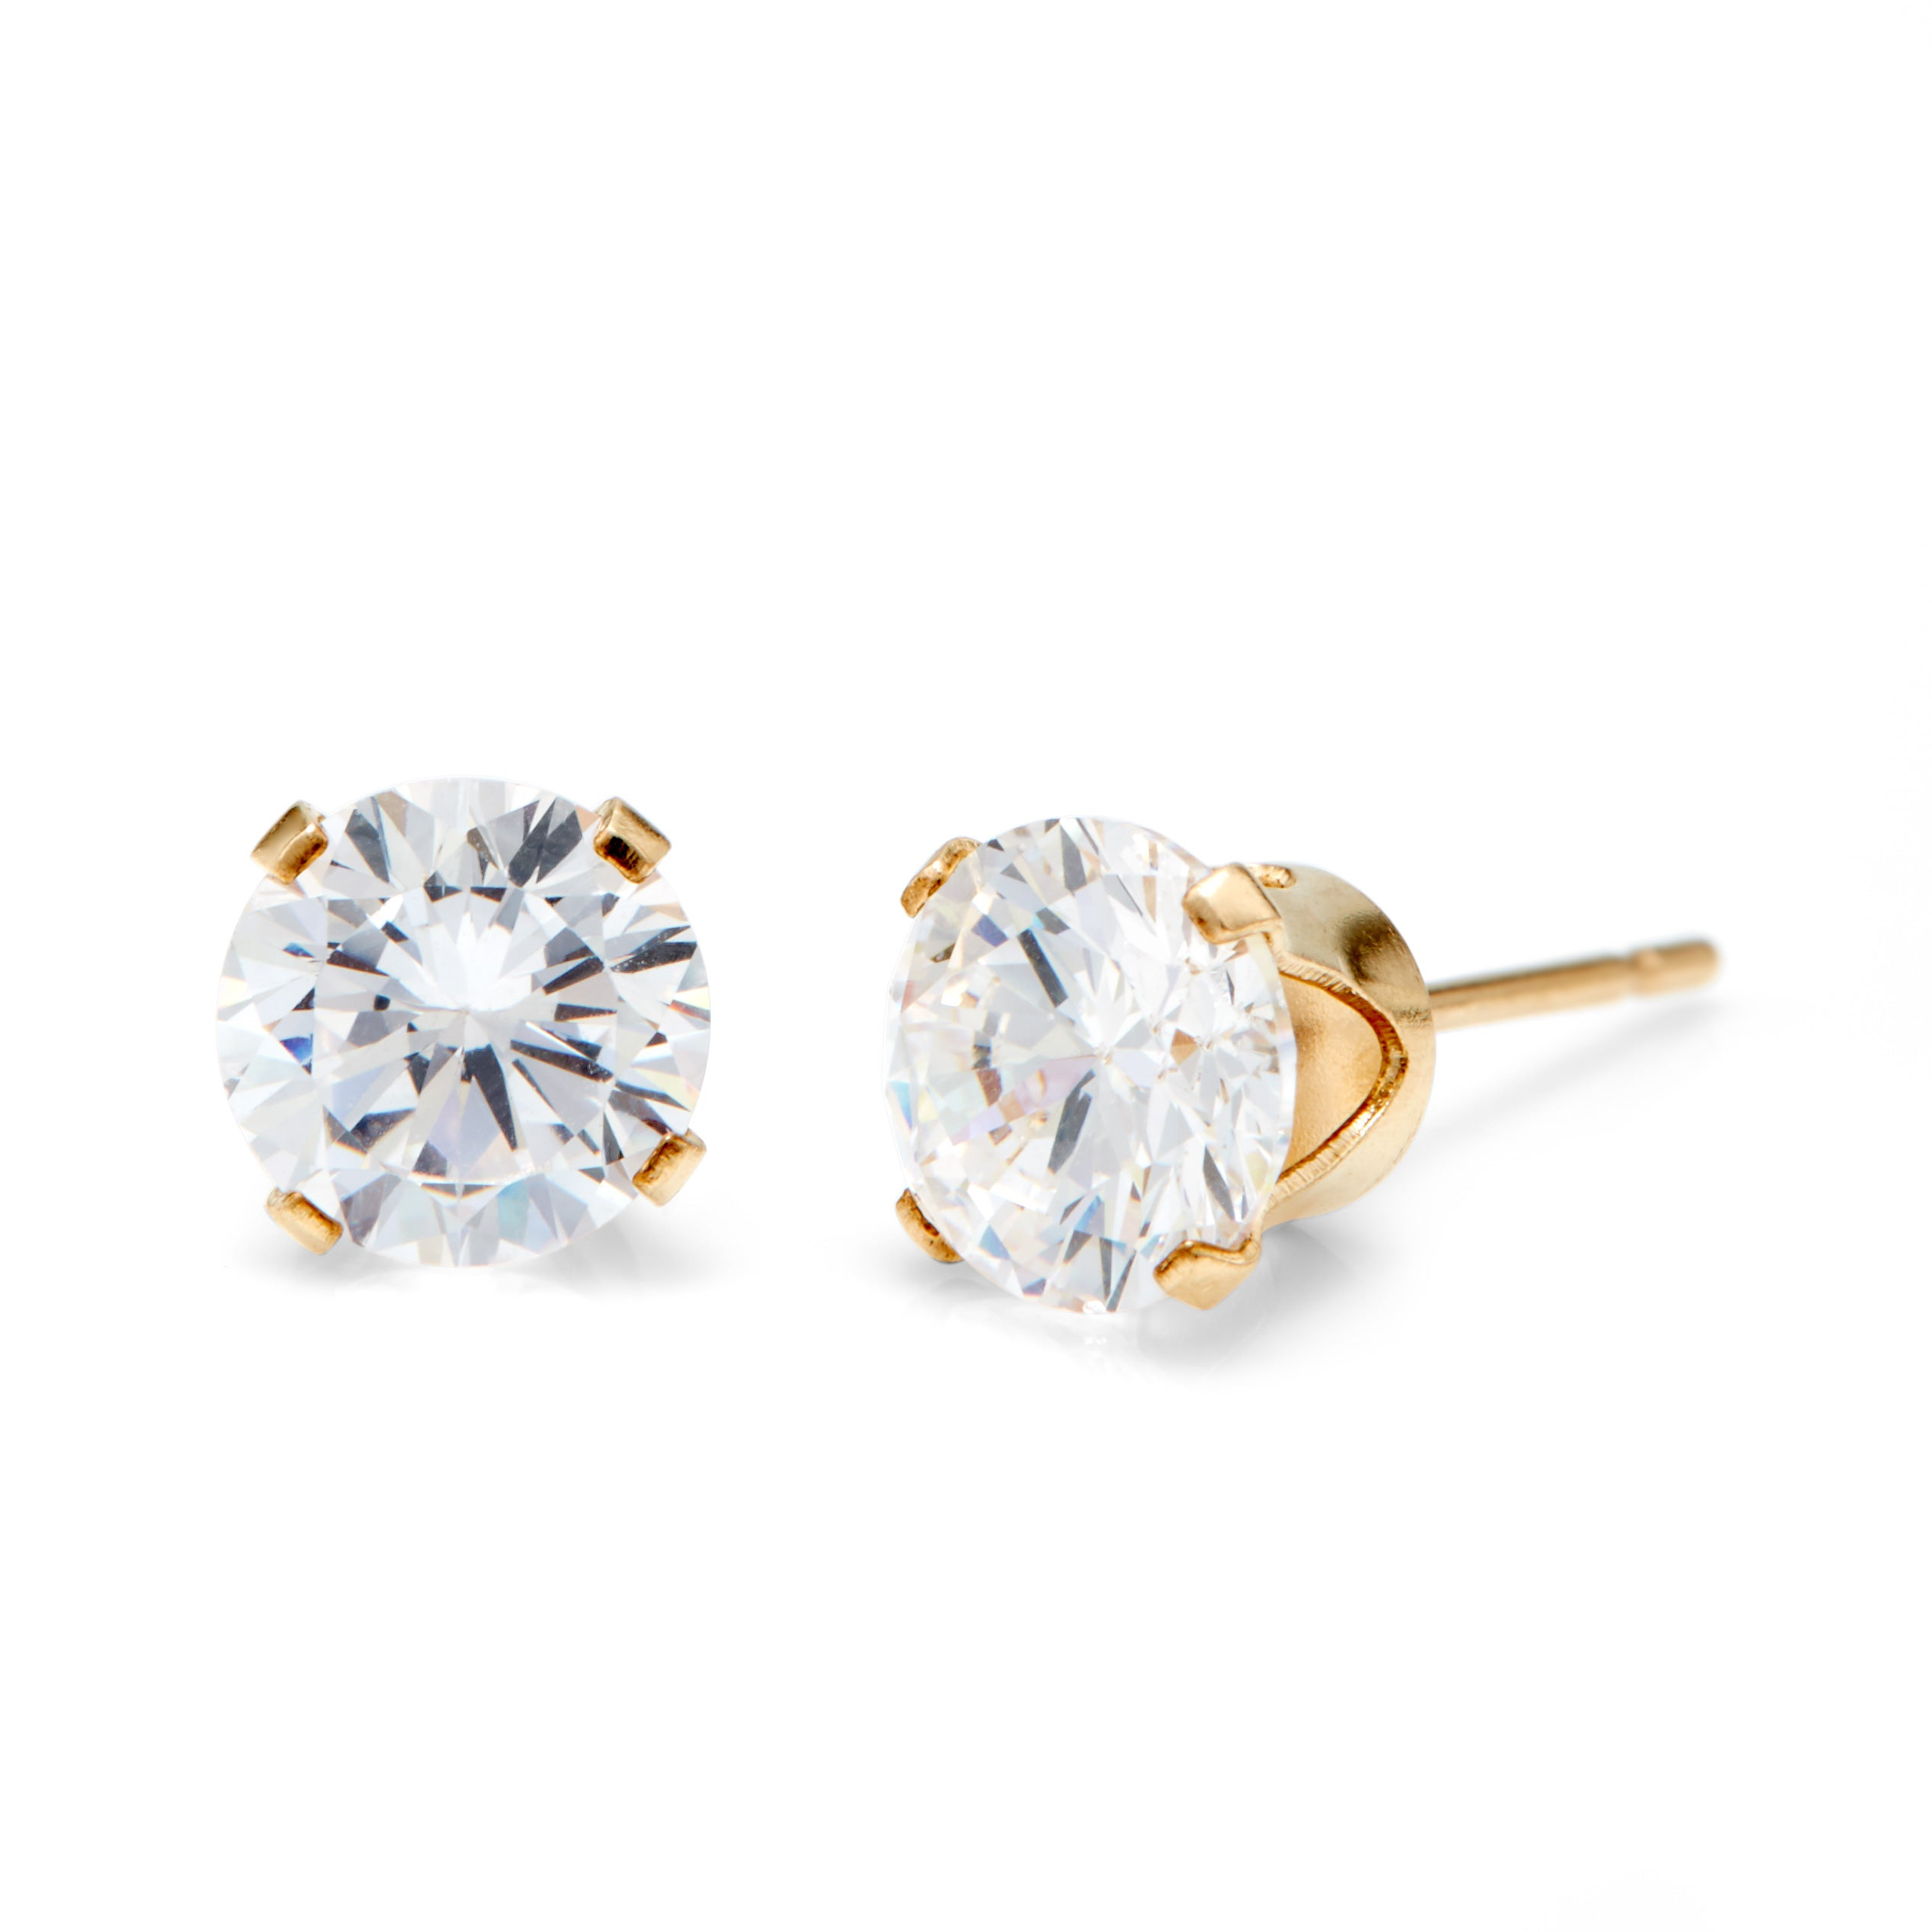 Mens 14k Gold Filled Round Diamond Cz 6mm Stud Earrings